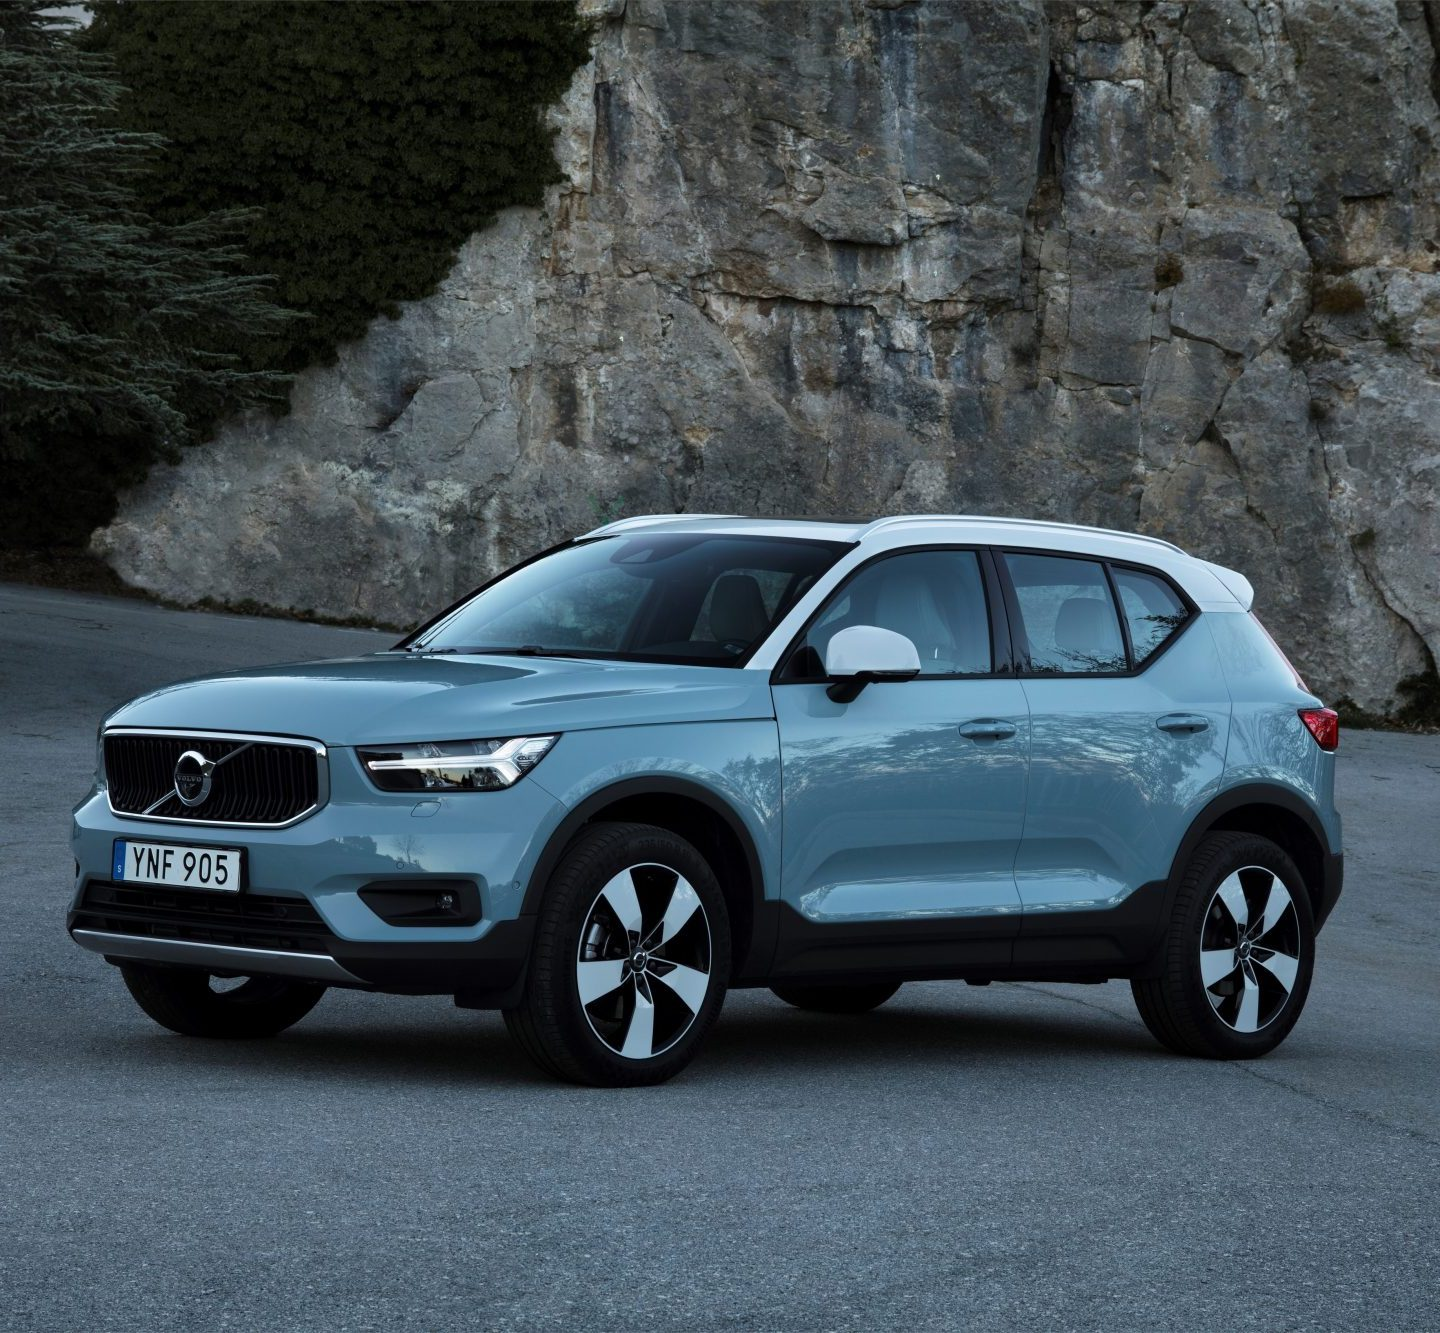 2019 Volvo XC40: Don't Let Its Good Looks Fool You